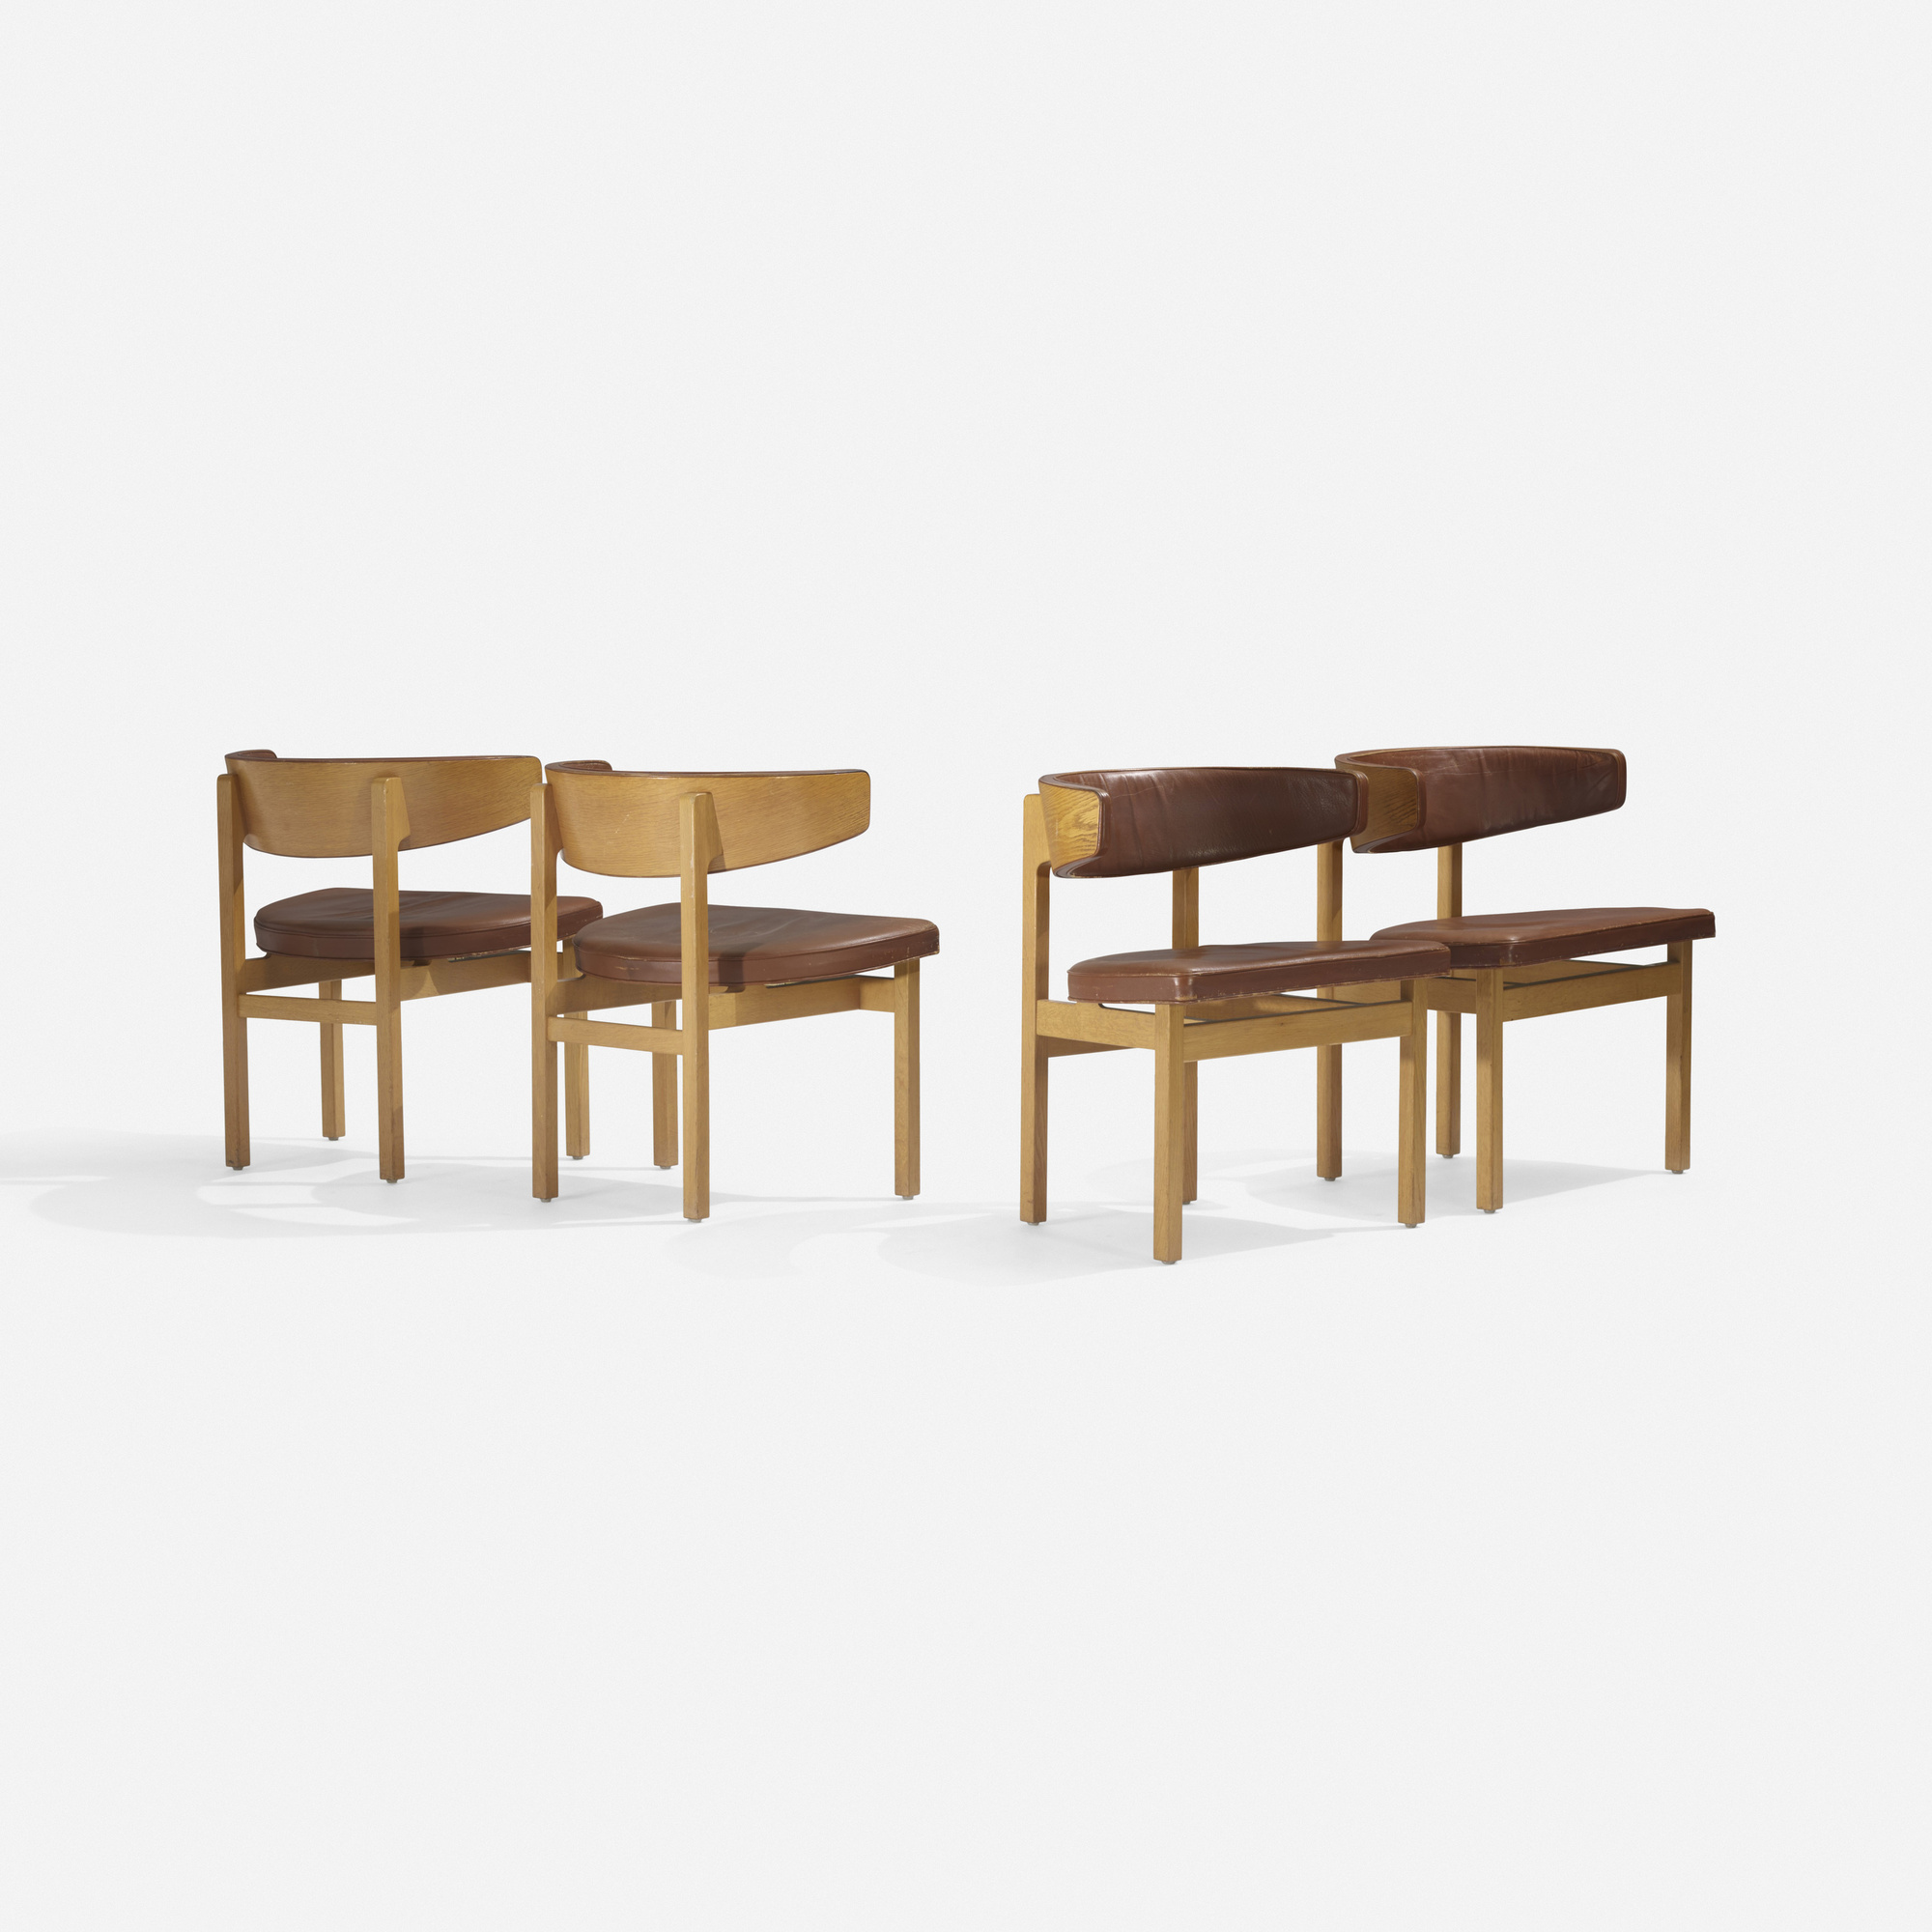 240: Børge Mogensen / Conference chairs, set of four (2 of 4)